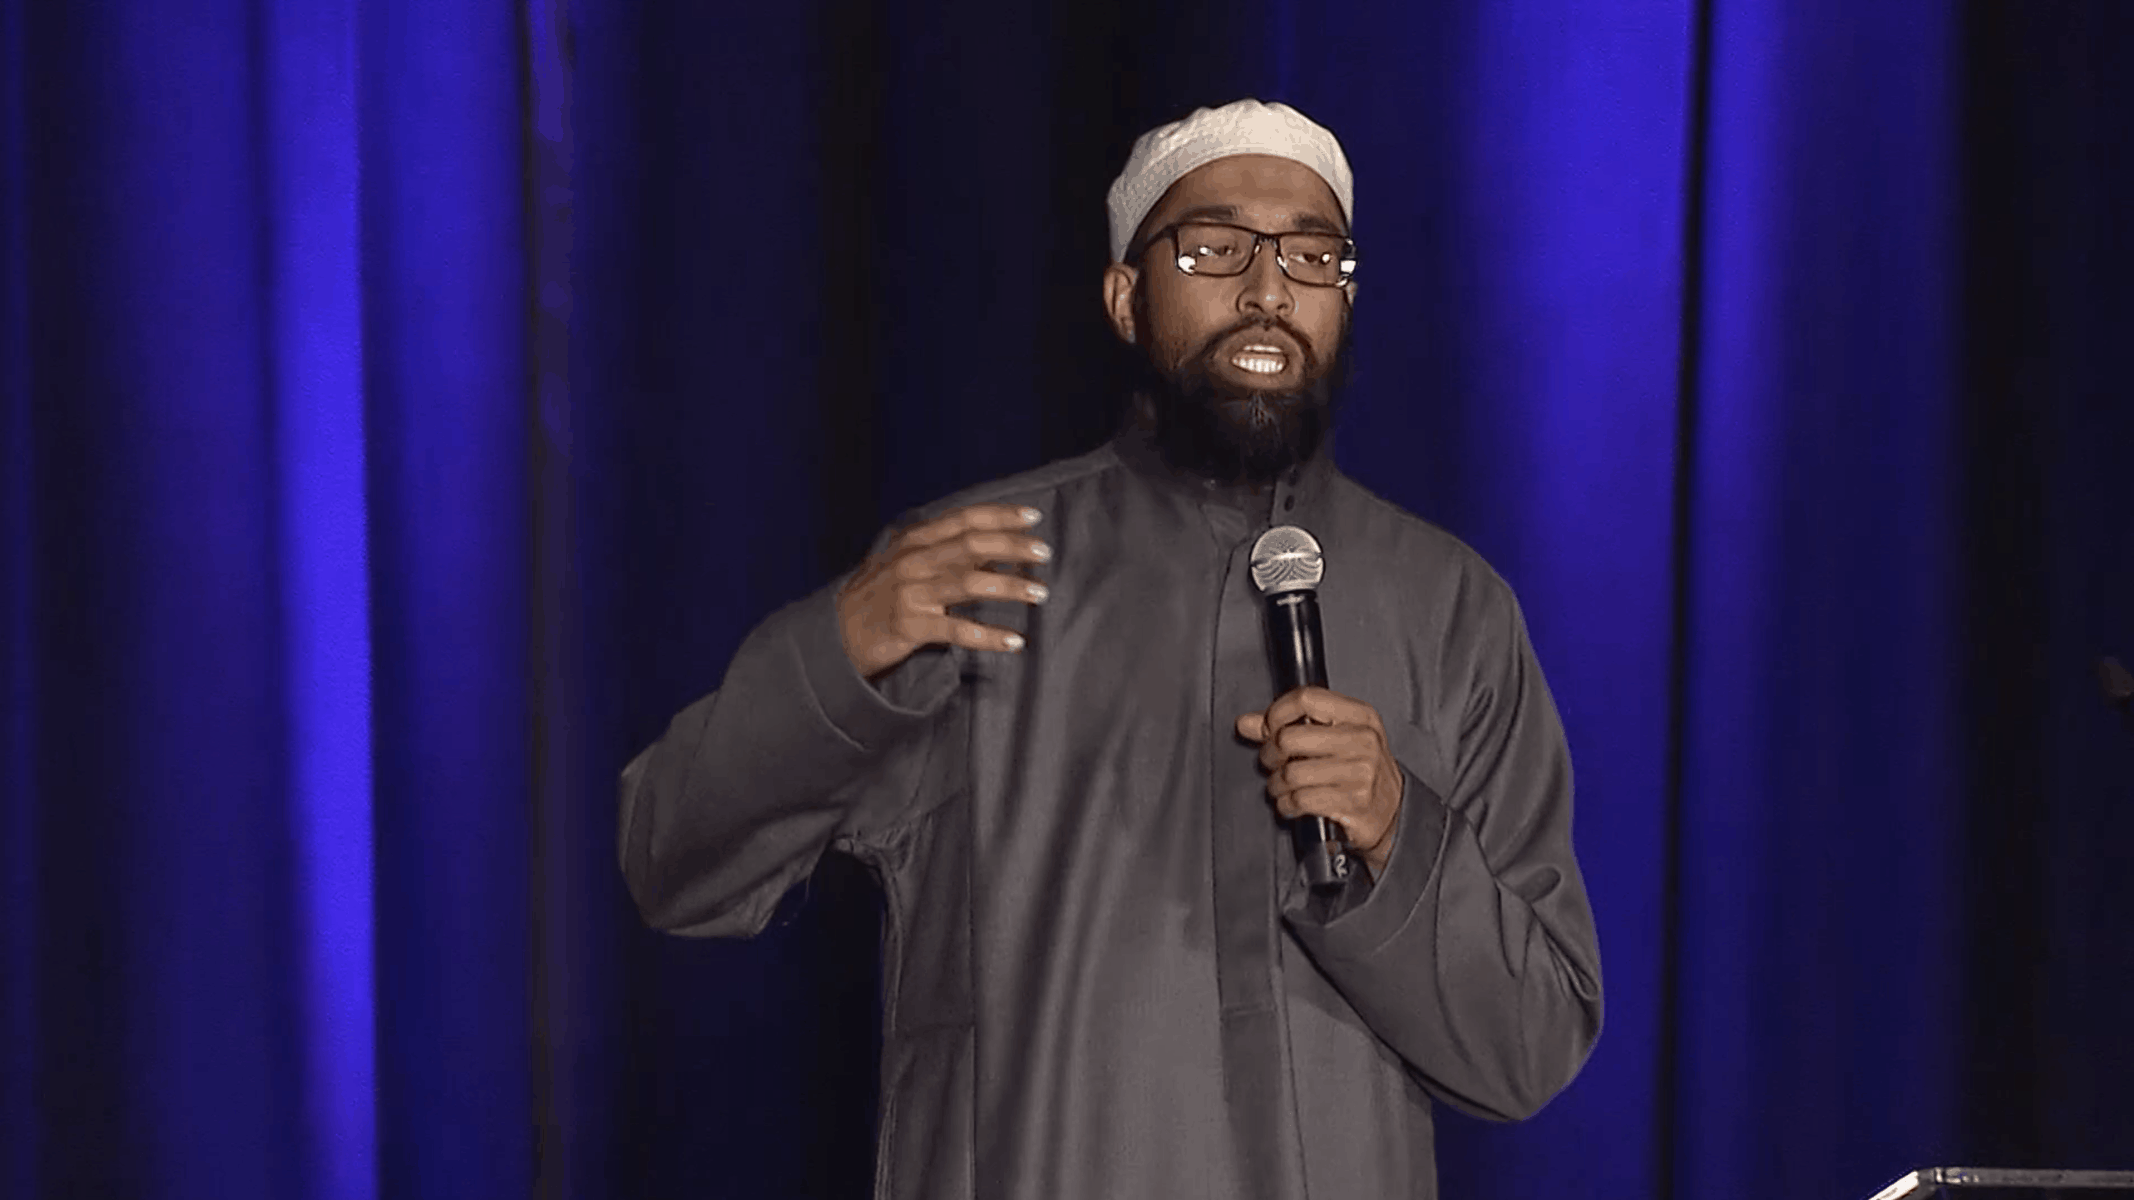 Wisam Sharieff – Art of Quranic Recitation: Inspire Yourself with the Book of Allah